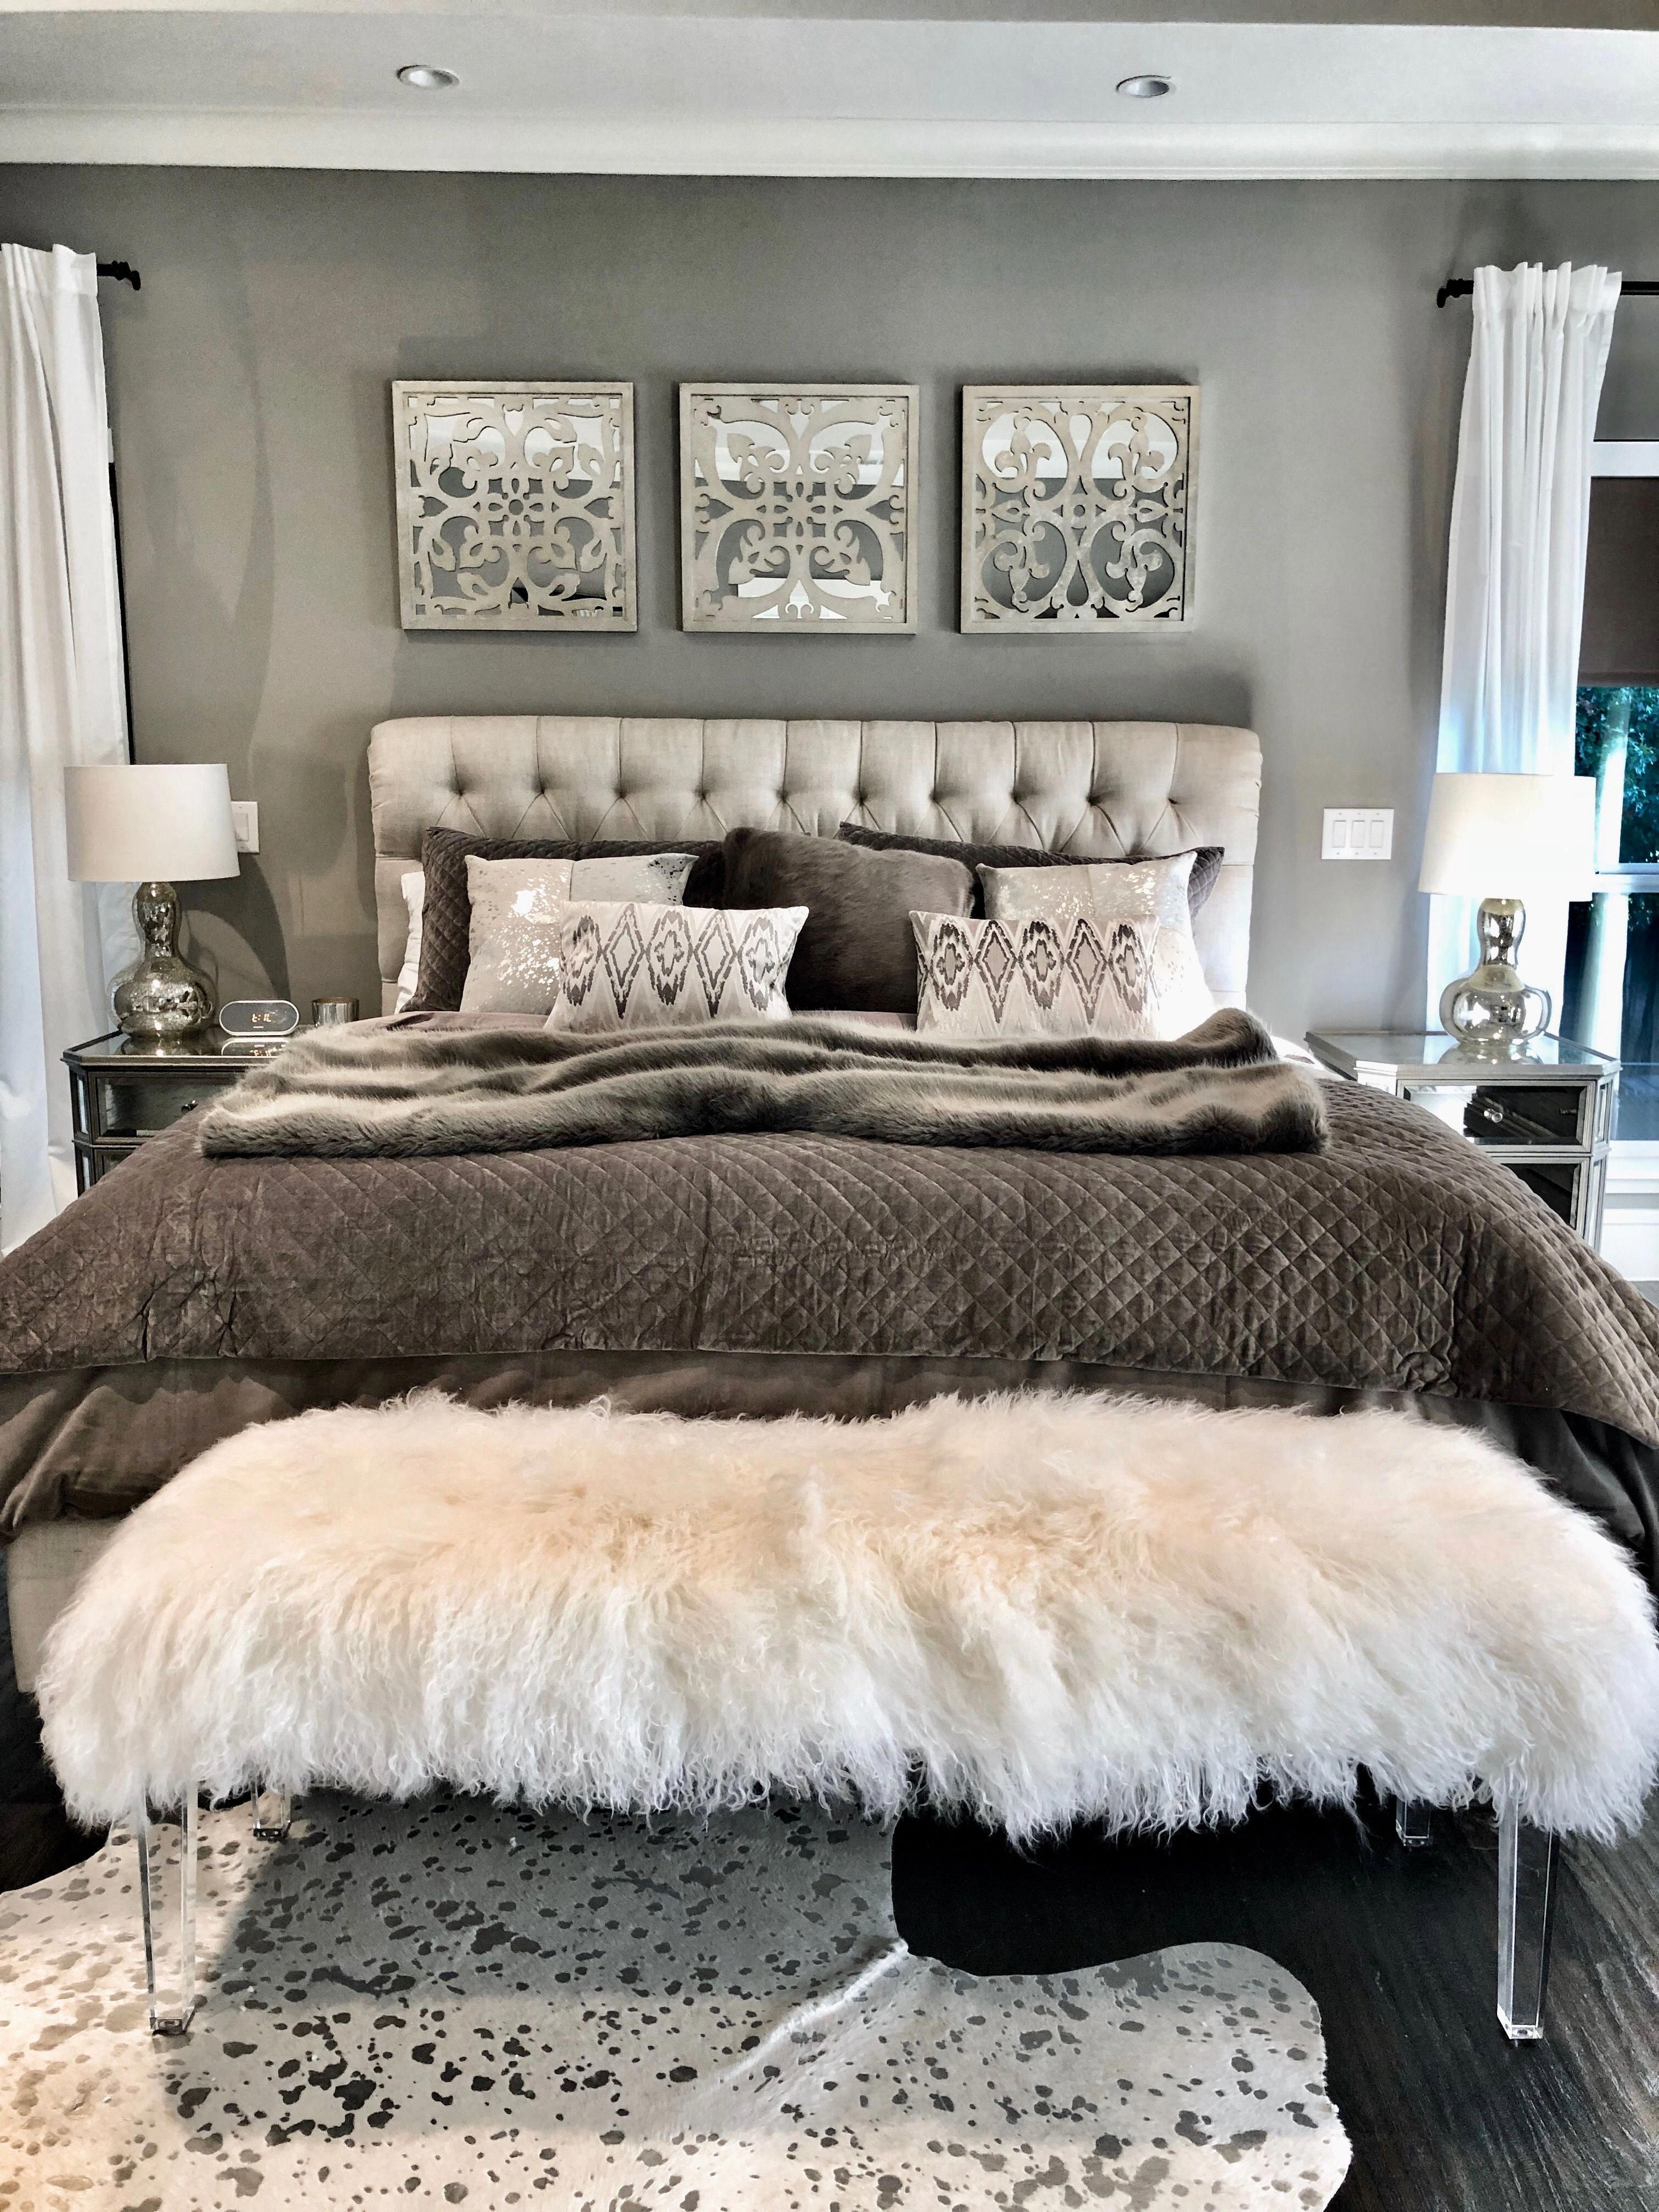 Photo of In love with my grey master bedroom aesthetic! The tufted headboard and grey + w…